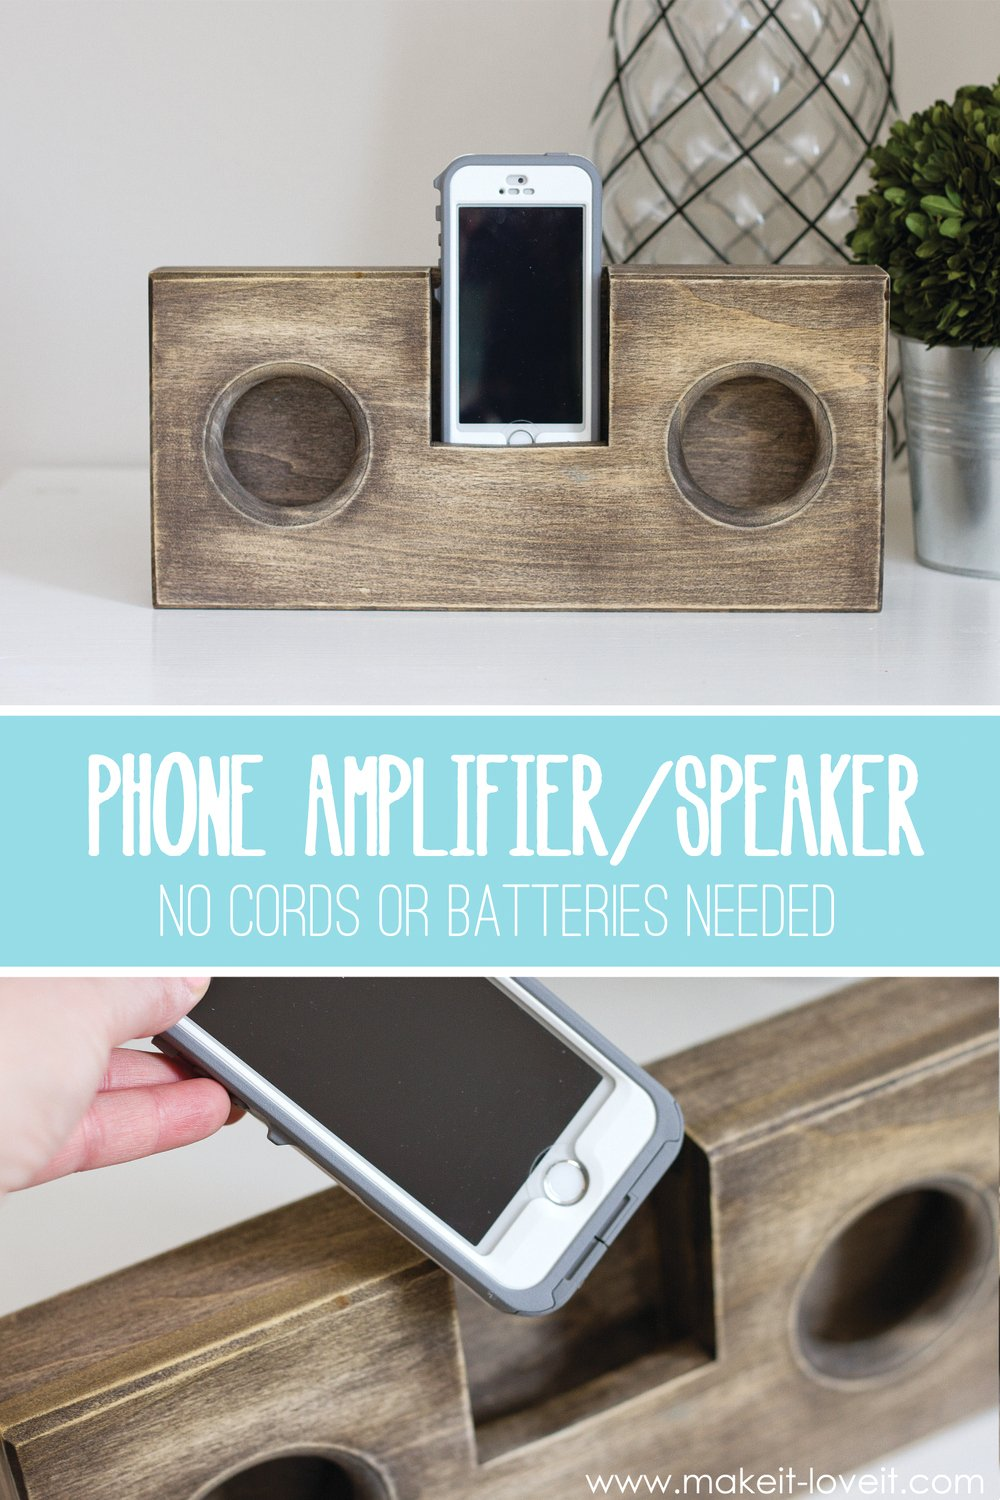 Wooden phone amplifier/speaker (no cord or batteries needed)